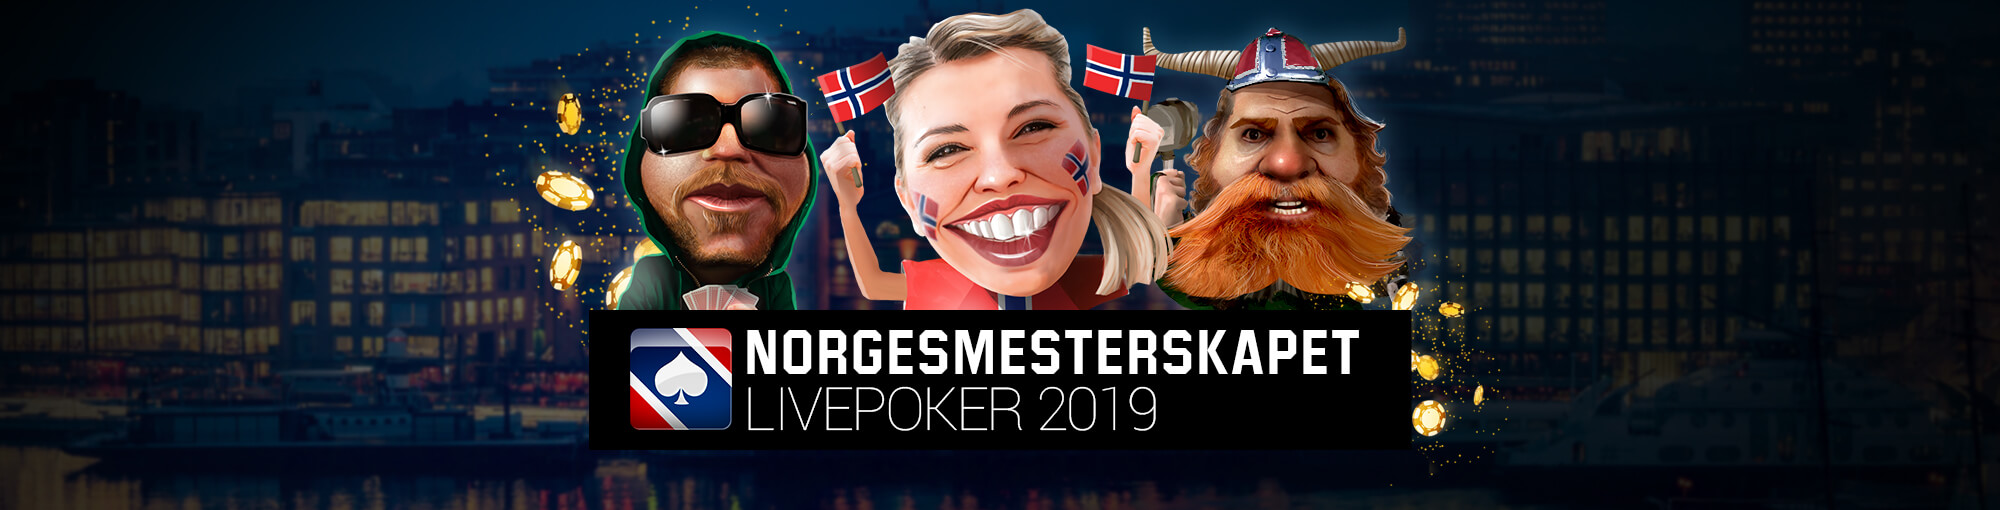 /promotions/poker-promotions/norwegian-championship-2018